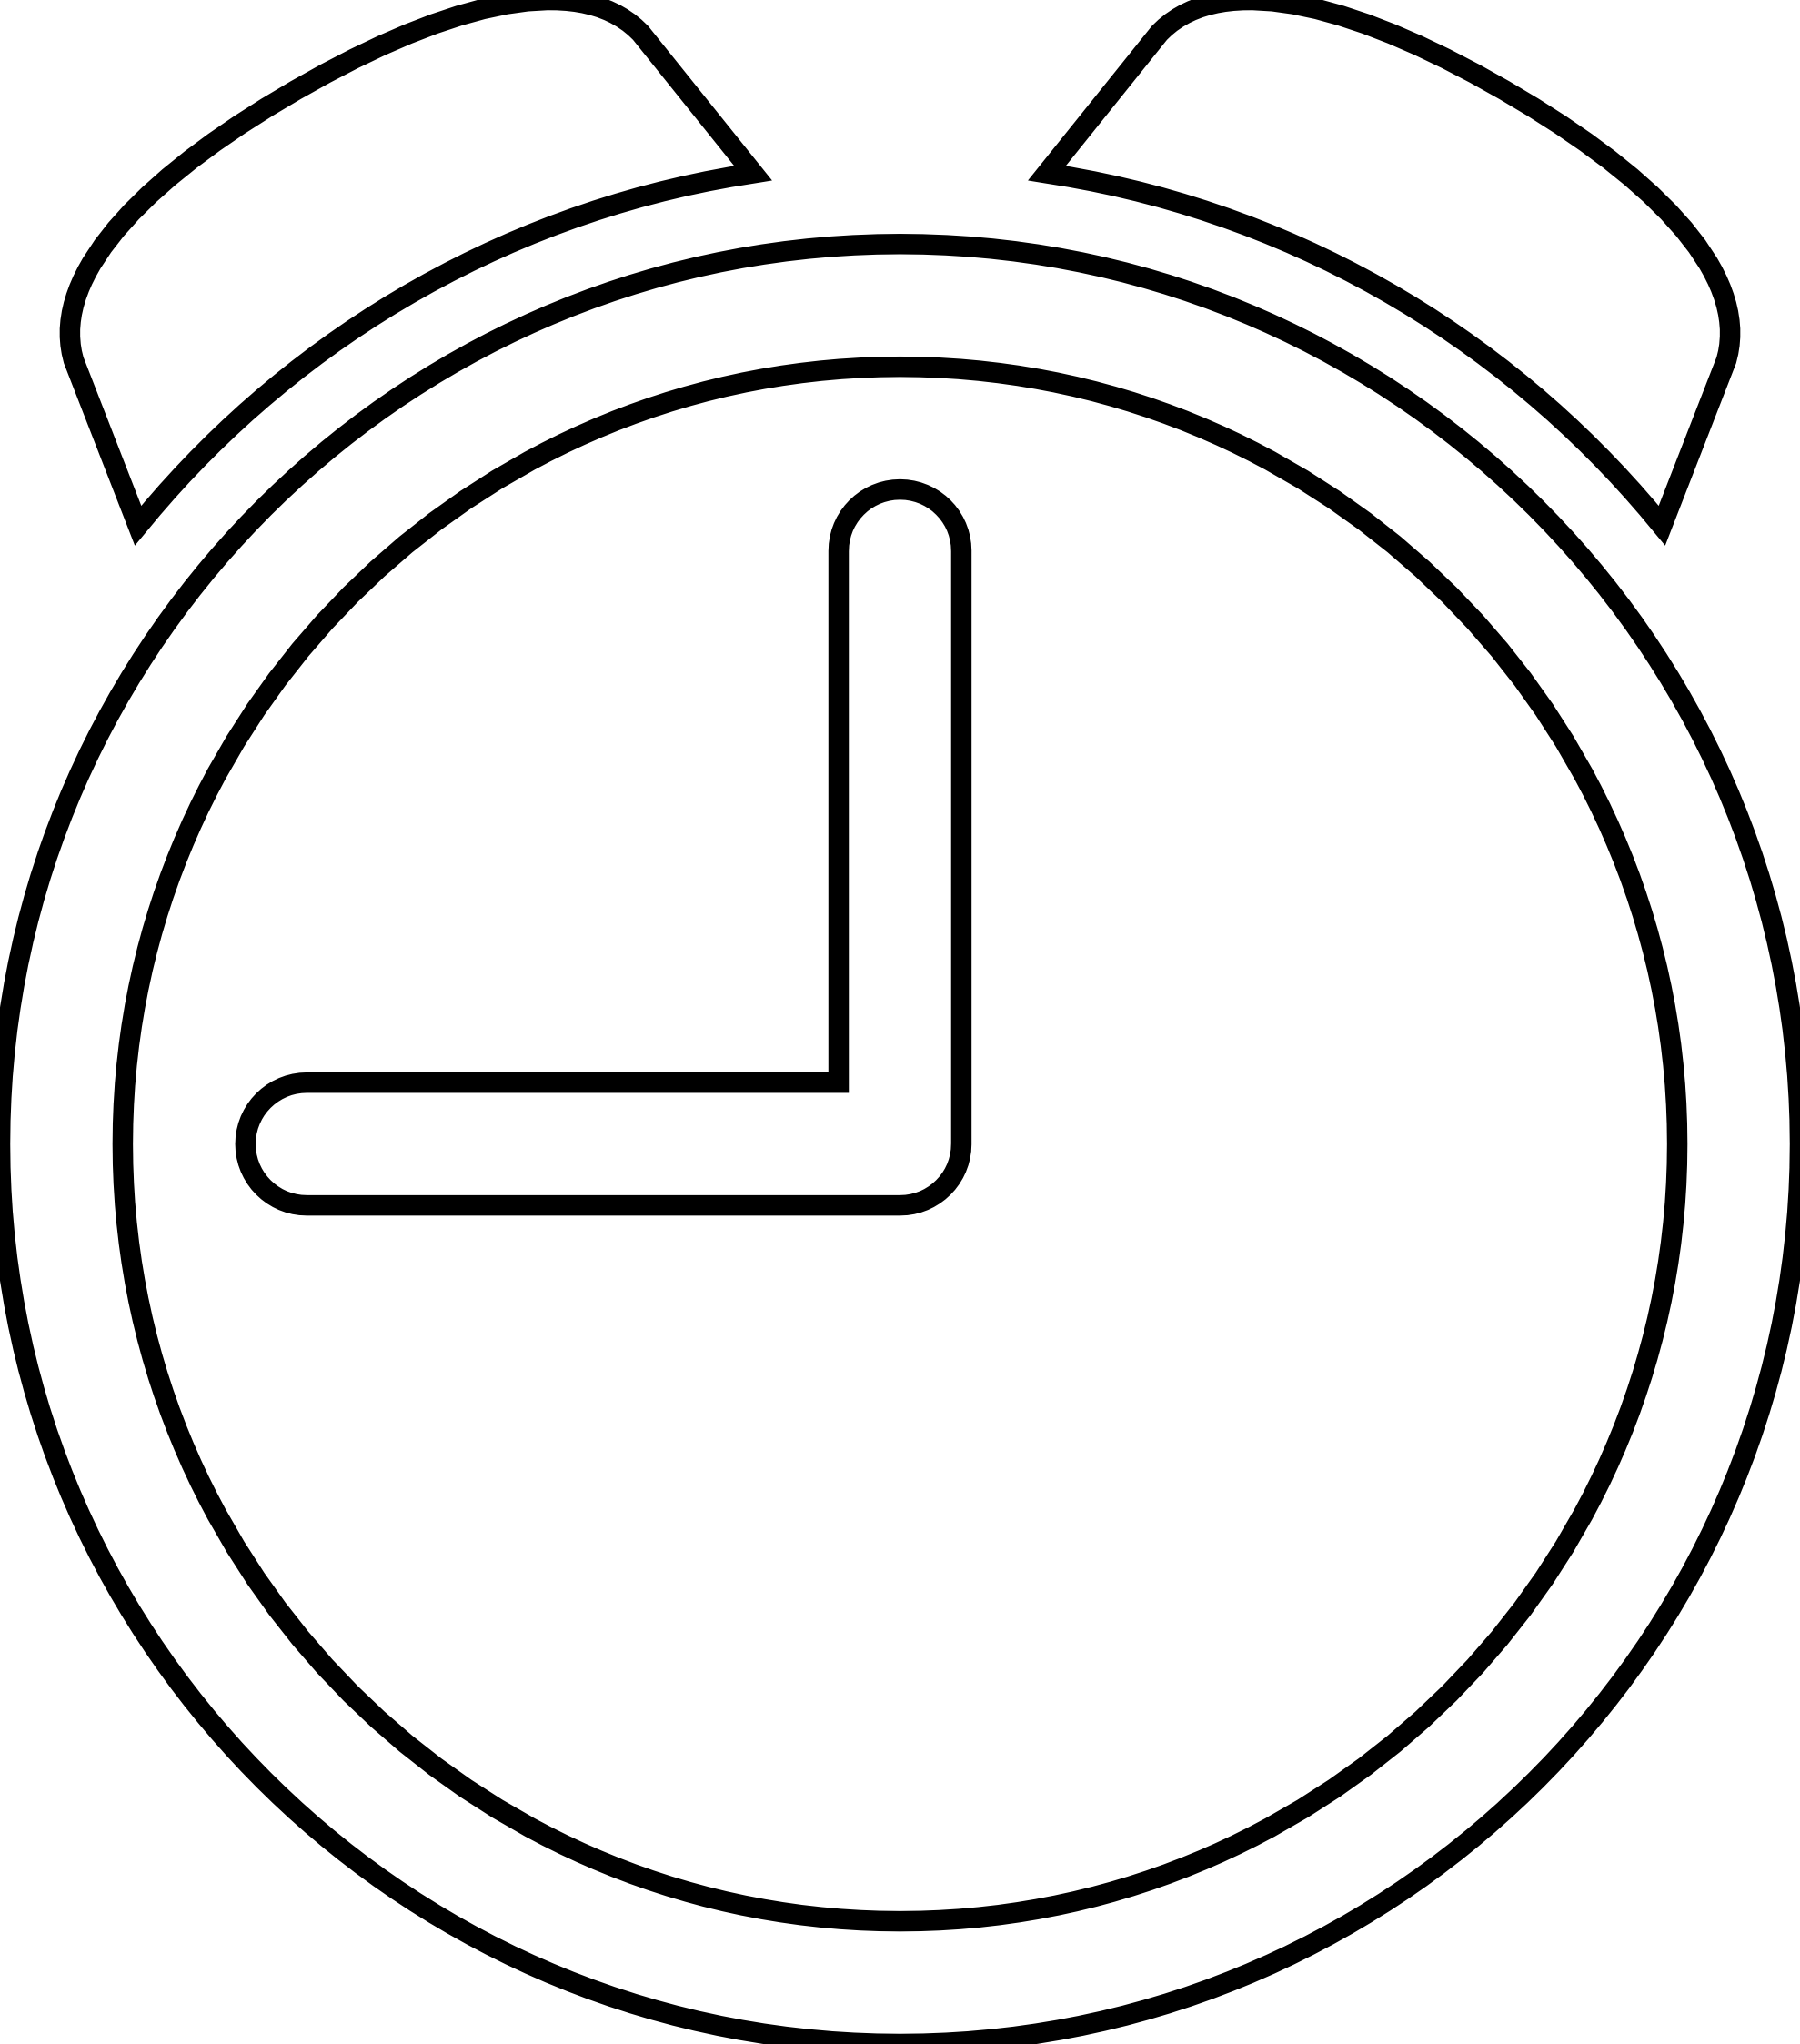 Clock panda free images. Clocks clipart black and white